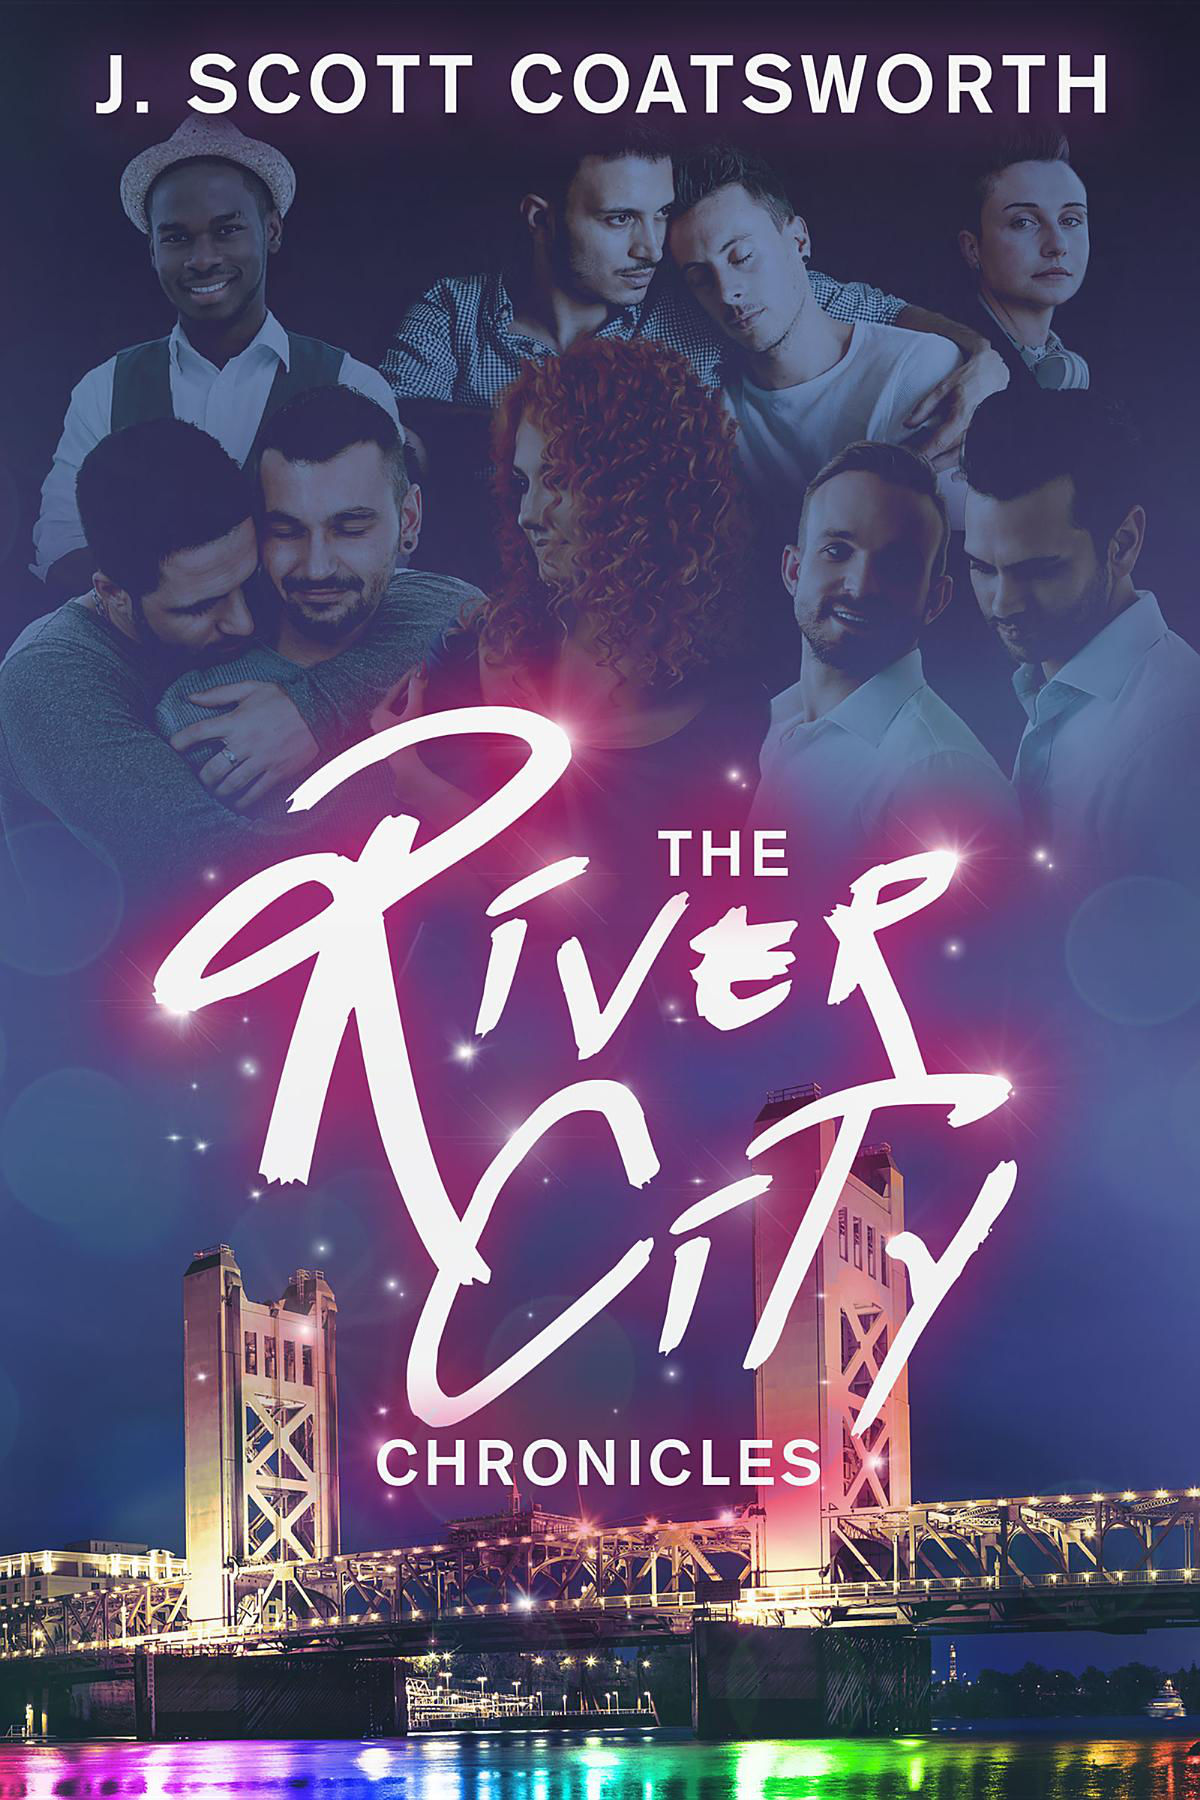 Review: The River City Chronicles by J. Scott Coatsworth